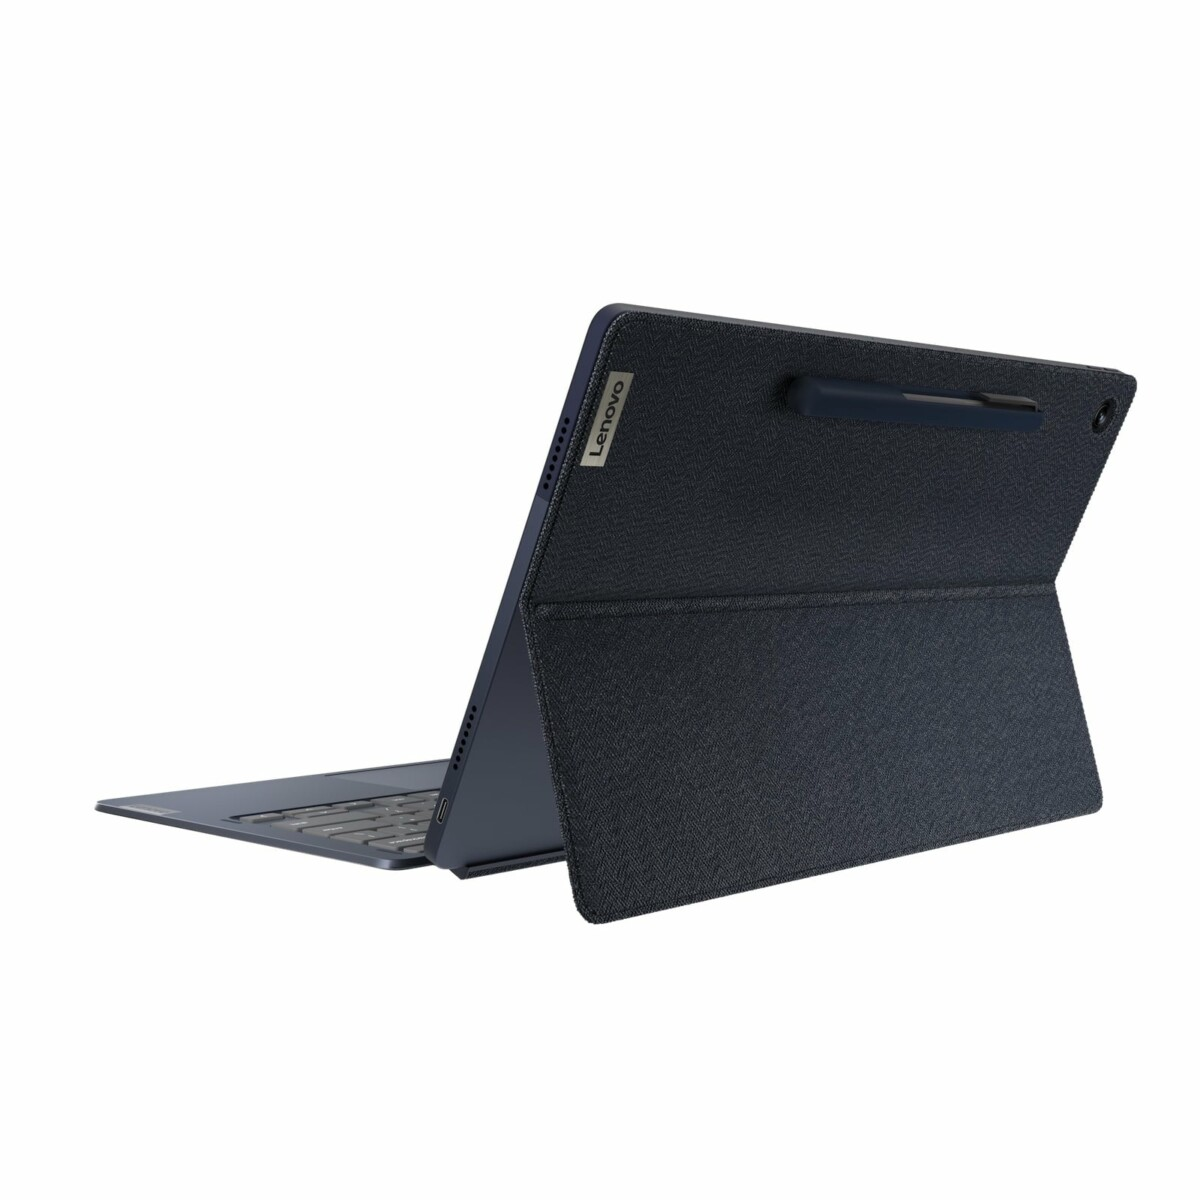 Lenovo Chromebook Duet 5 2021 model has a detachable OLED display and 4 speakers